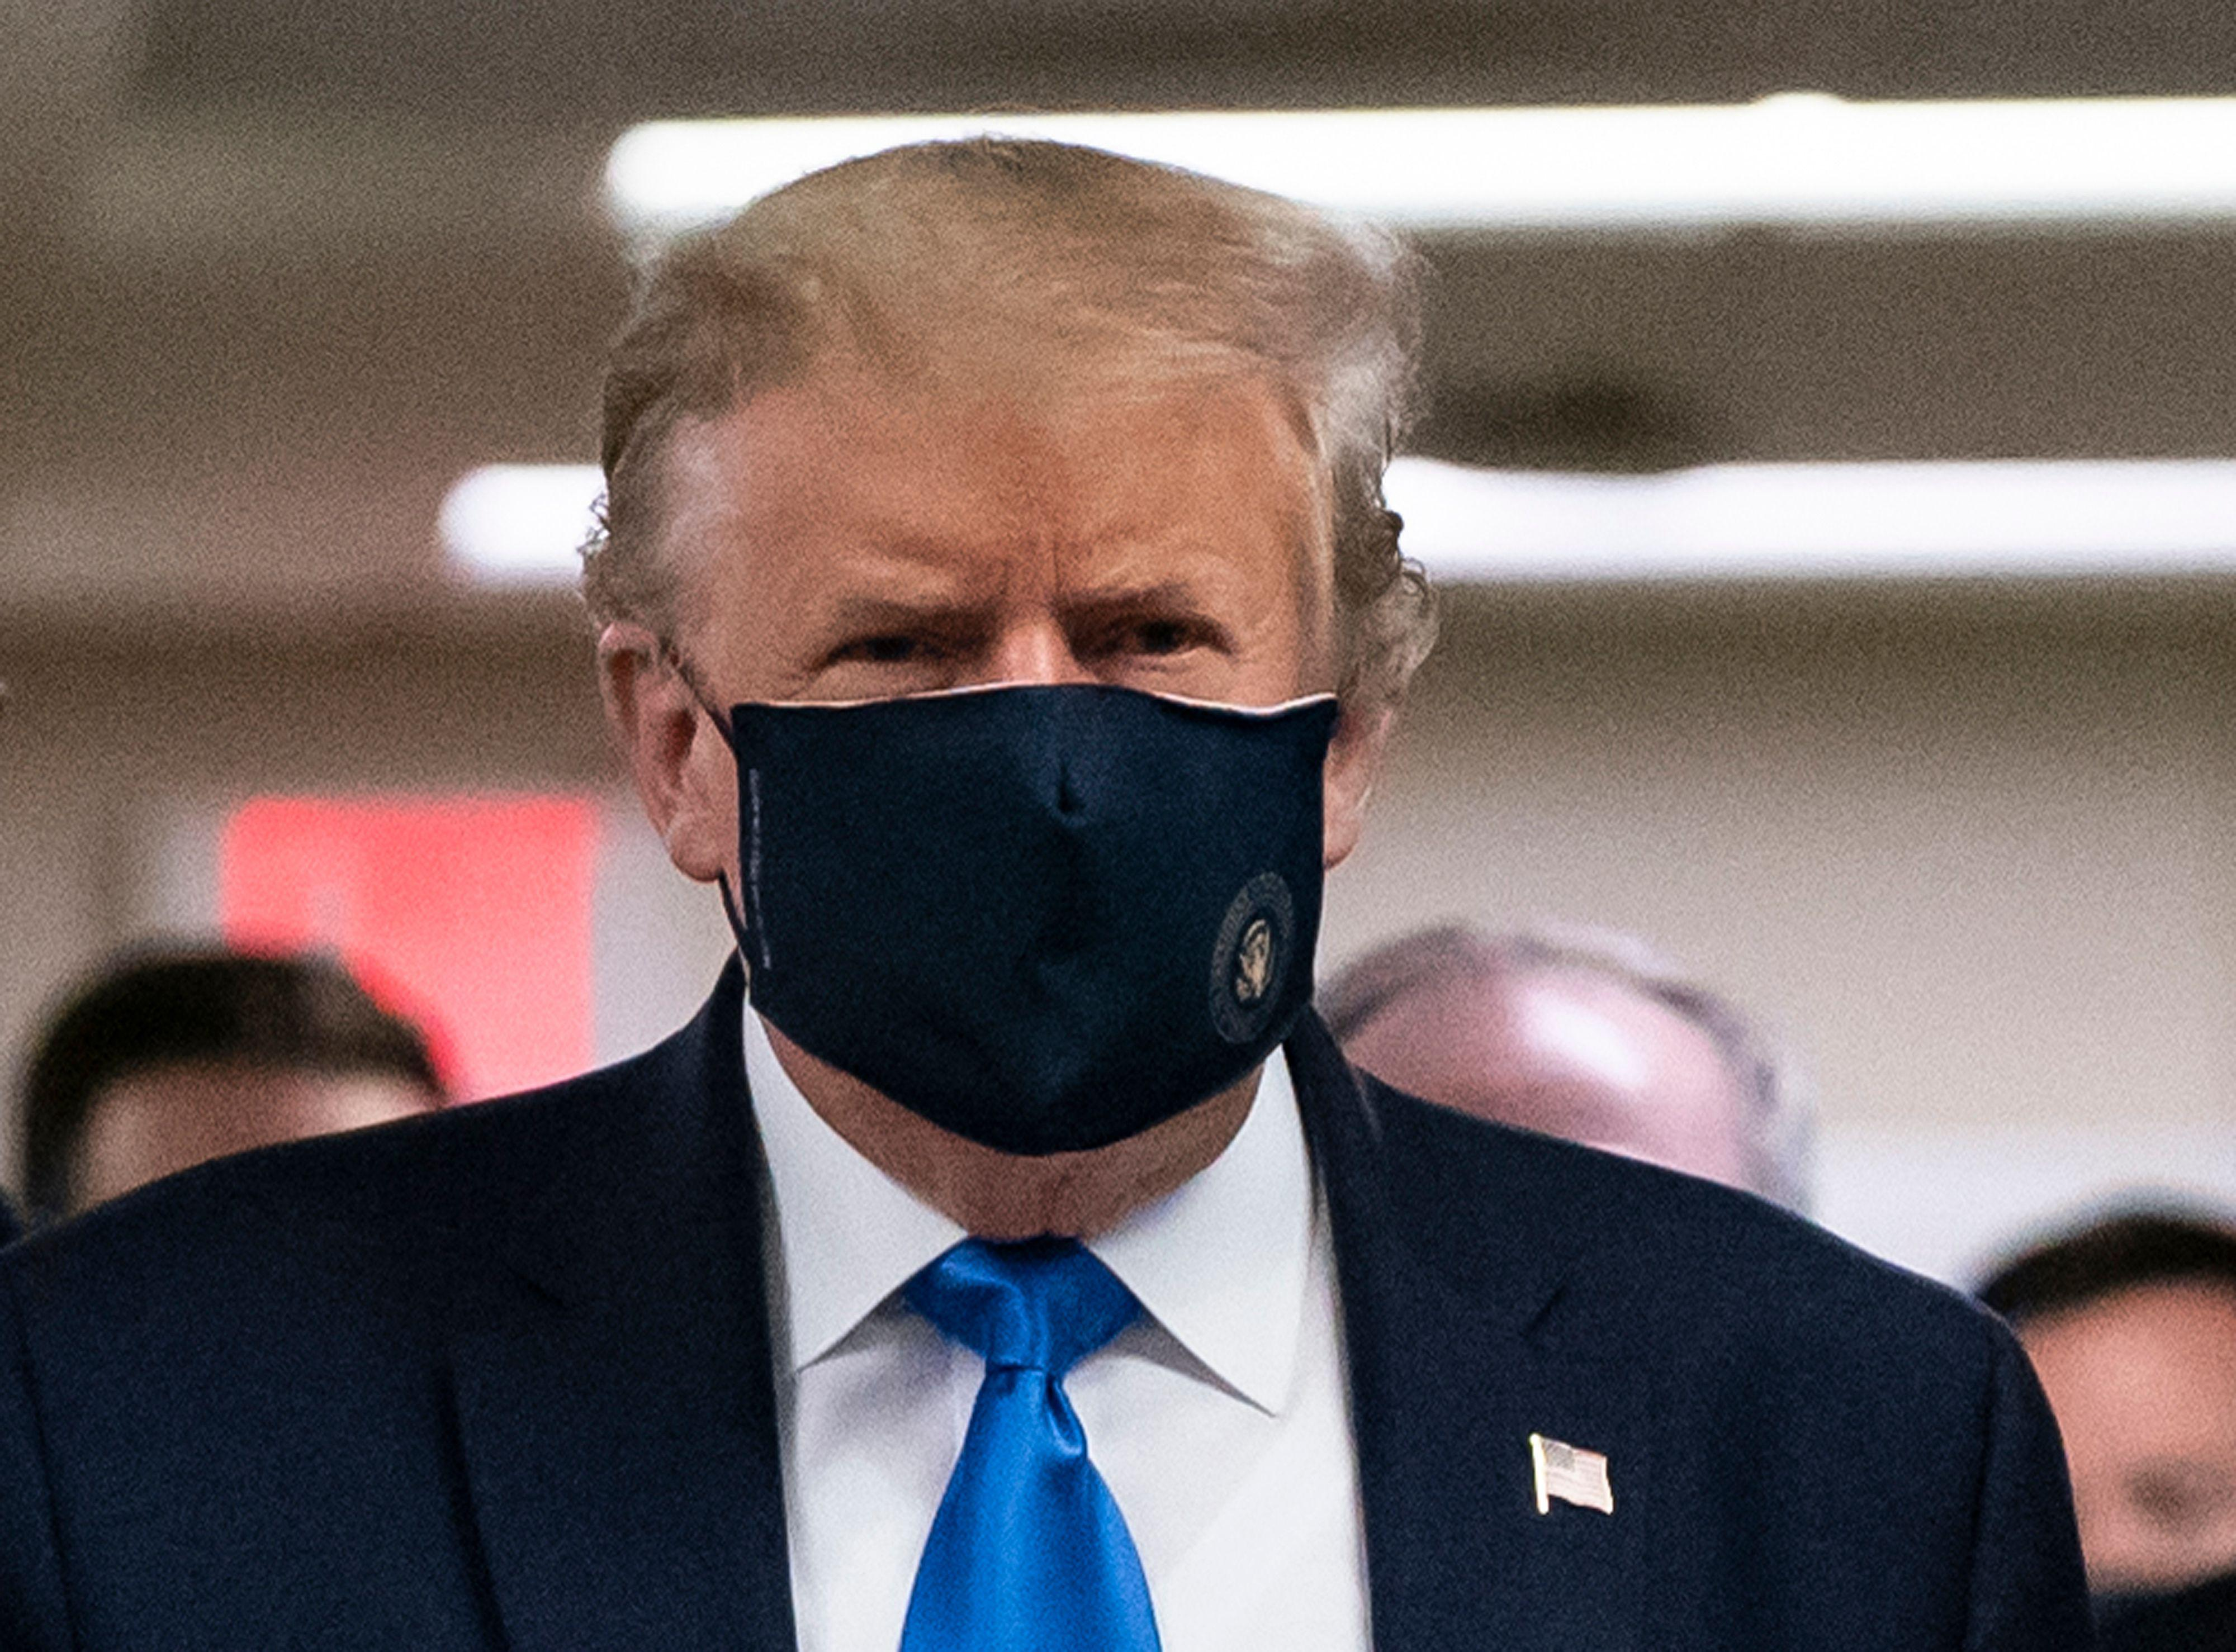 slate.com - Daniel Politi - Trump Wears Face Mask in Public for First Time During Coronavirus Pandemic